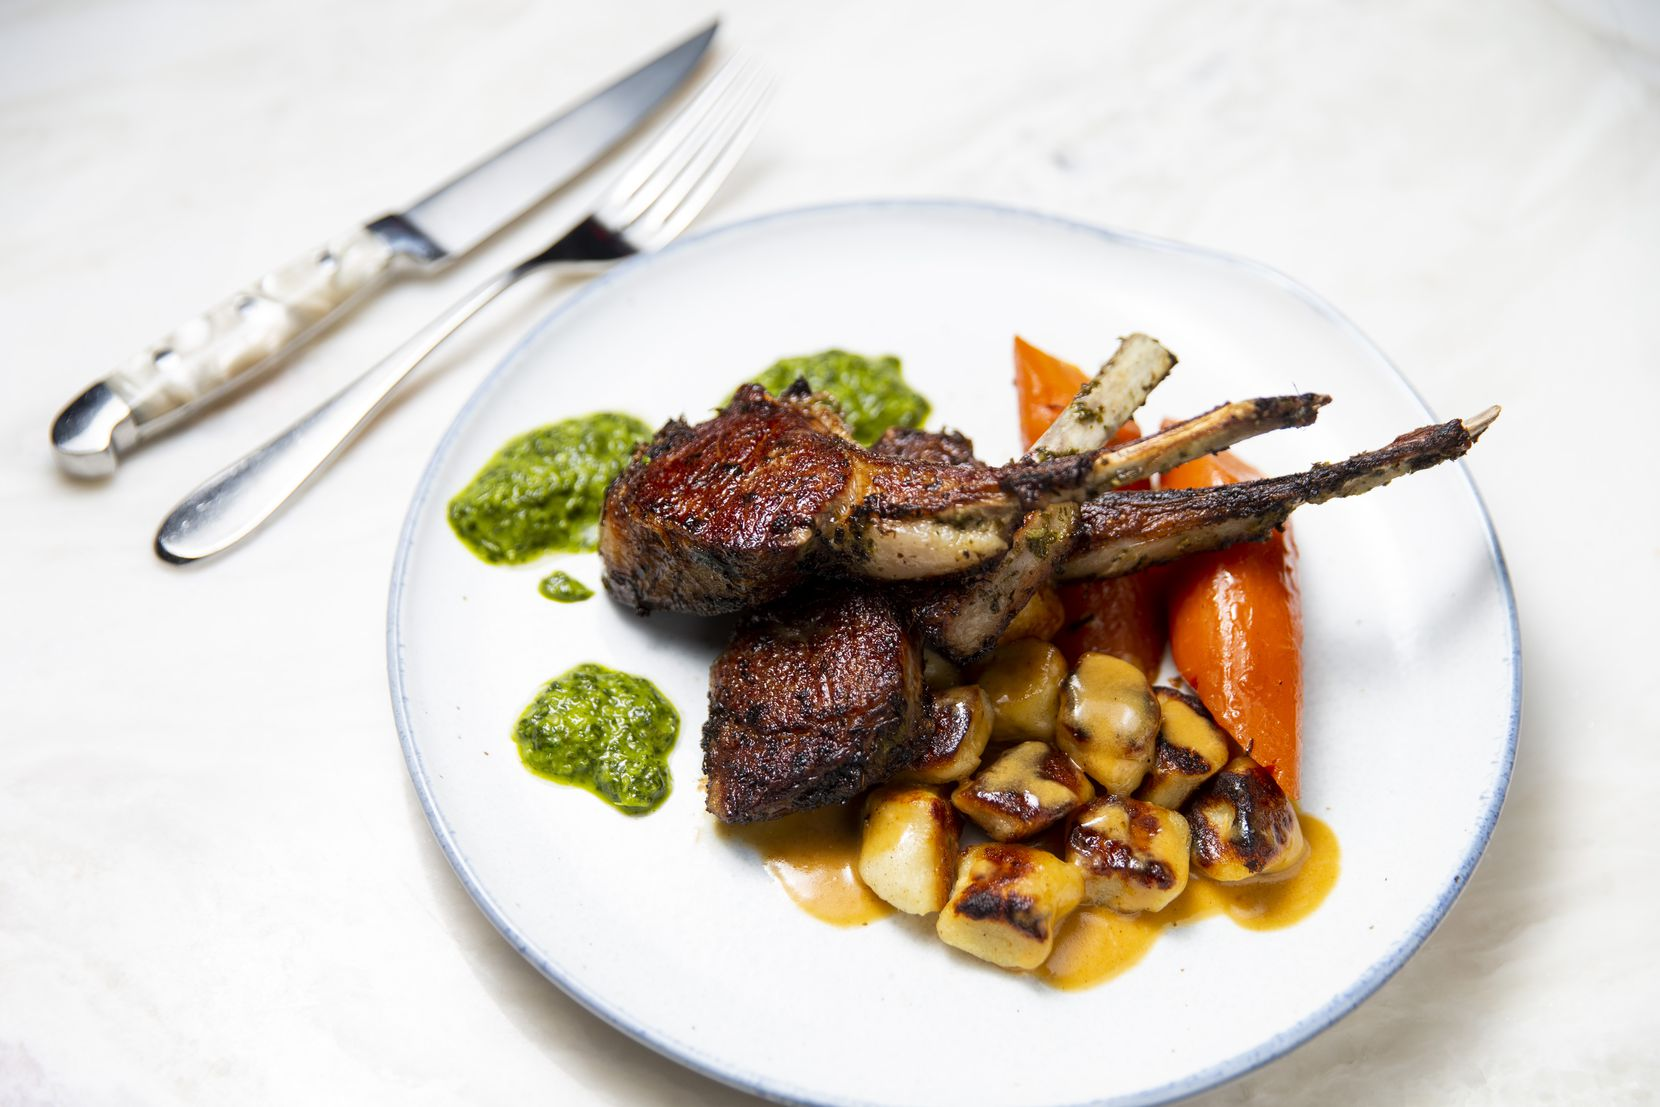 Lamb chops photographed at Tulum restaurant in Dallas